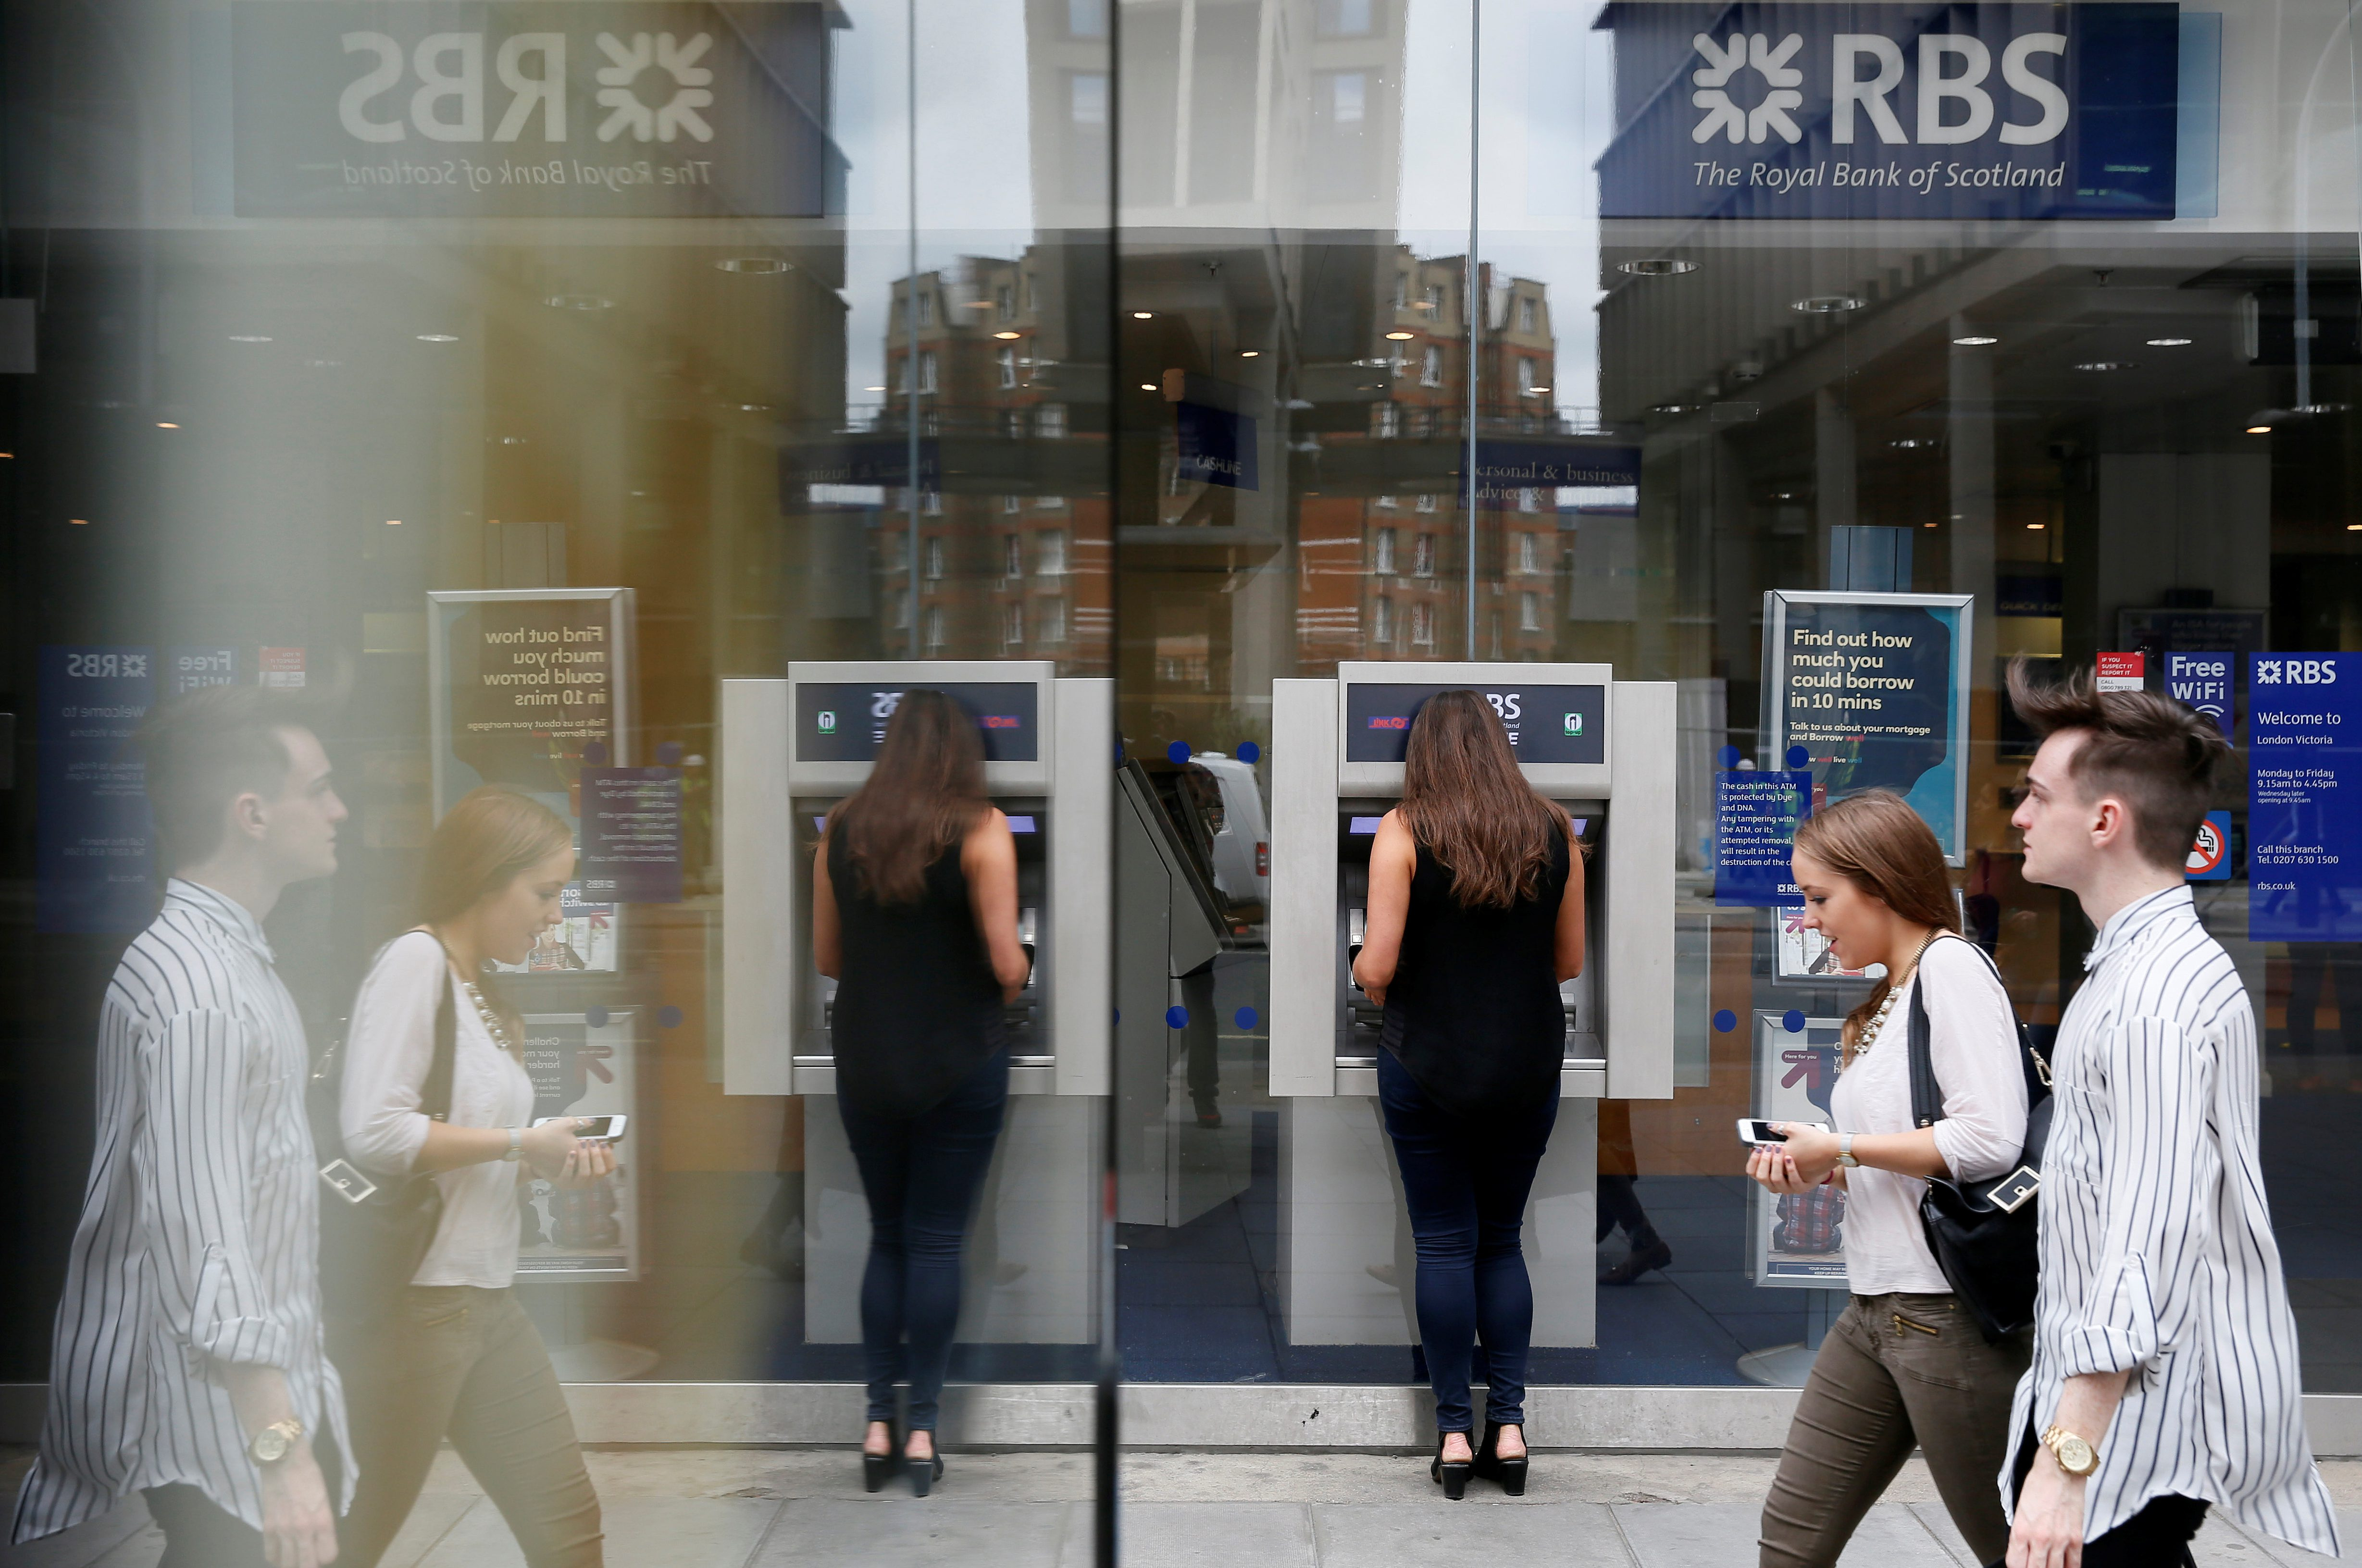 Pedestrians are reflected in the glass of an advertising board as they walk past a branch of The Royal Bank of Scotland in central London